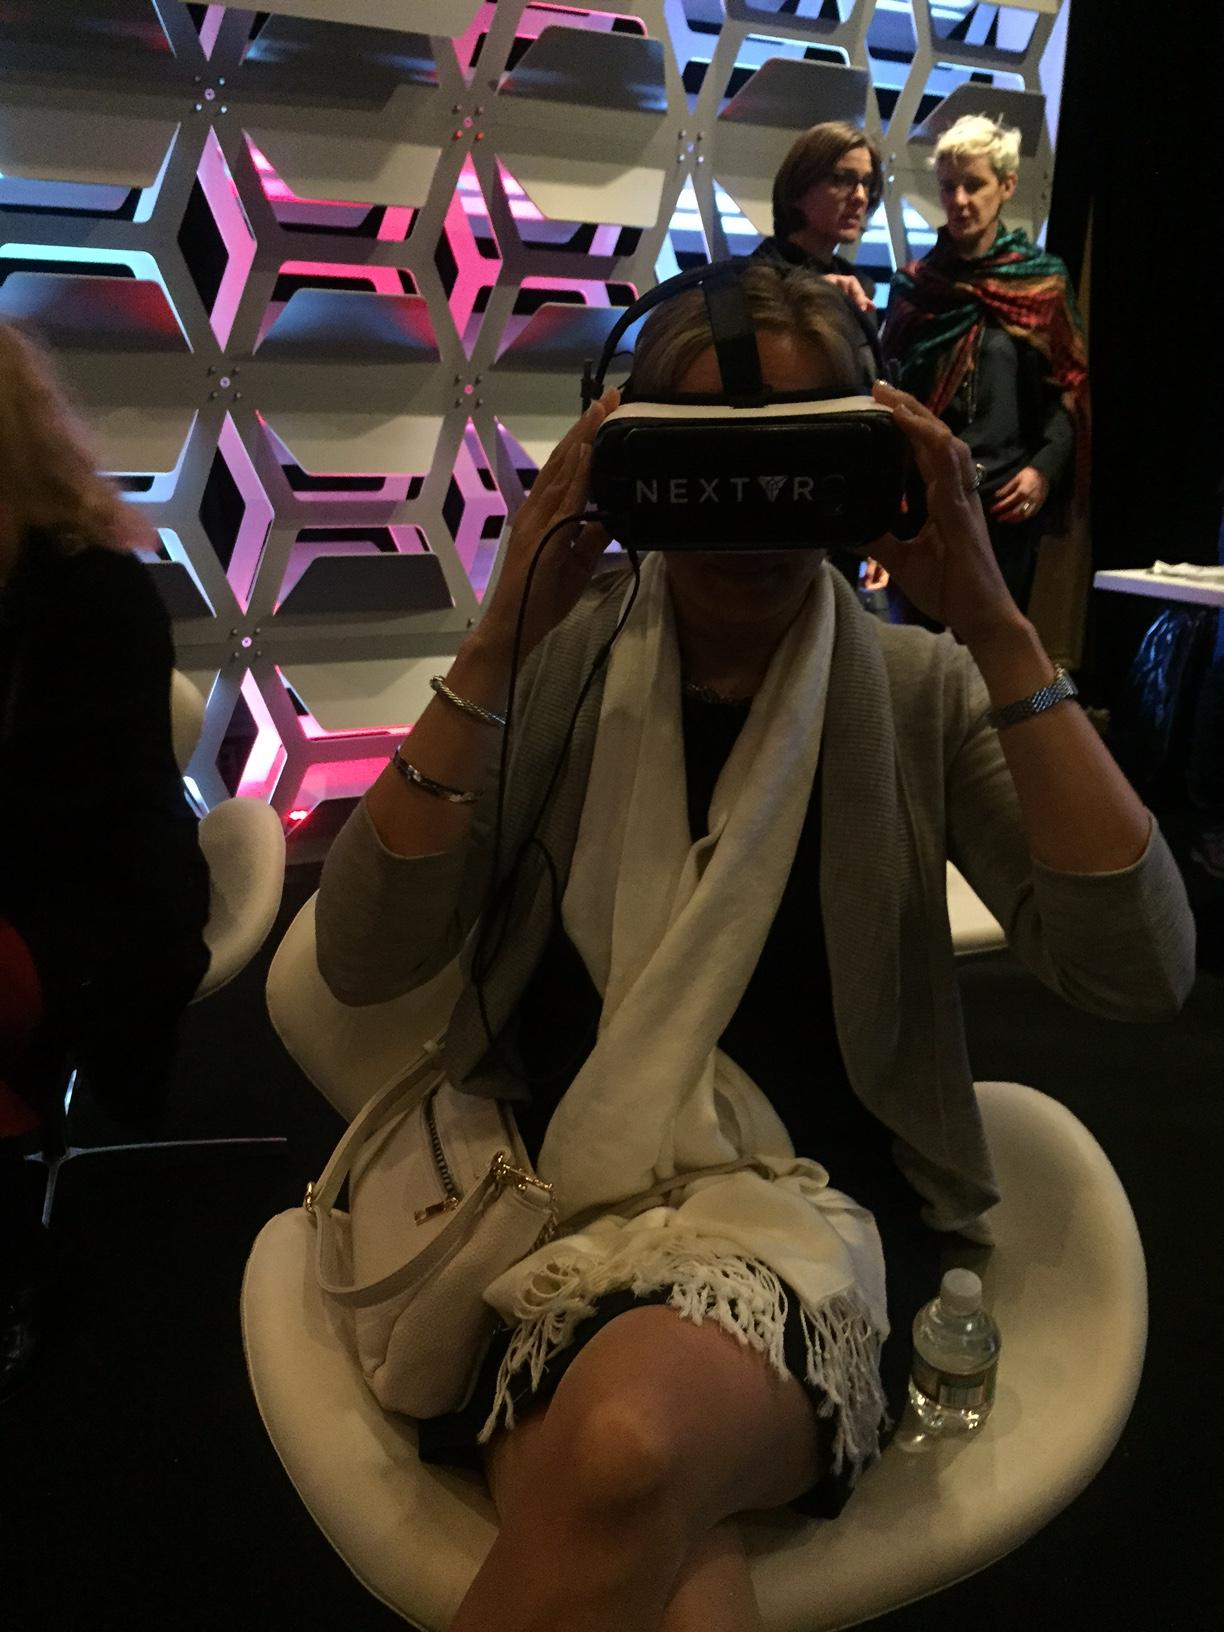 Lindsey seeing VR at Time Inc